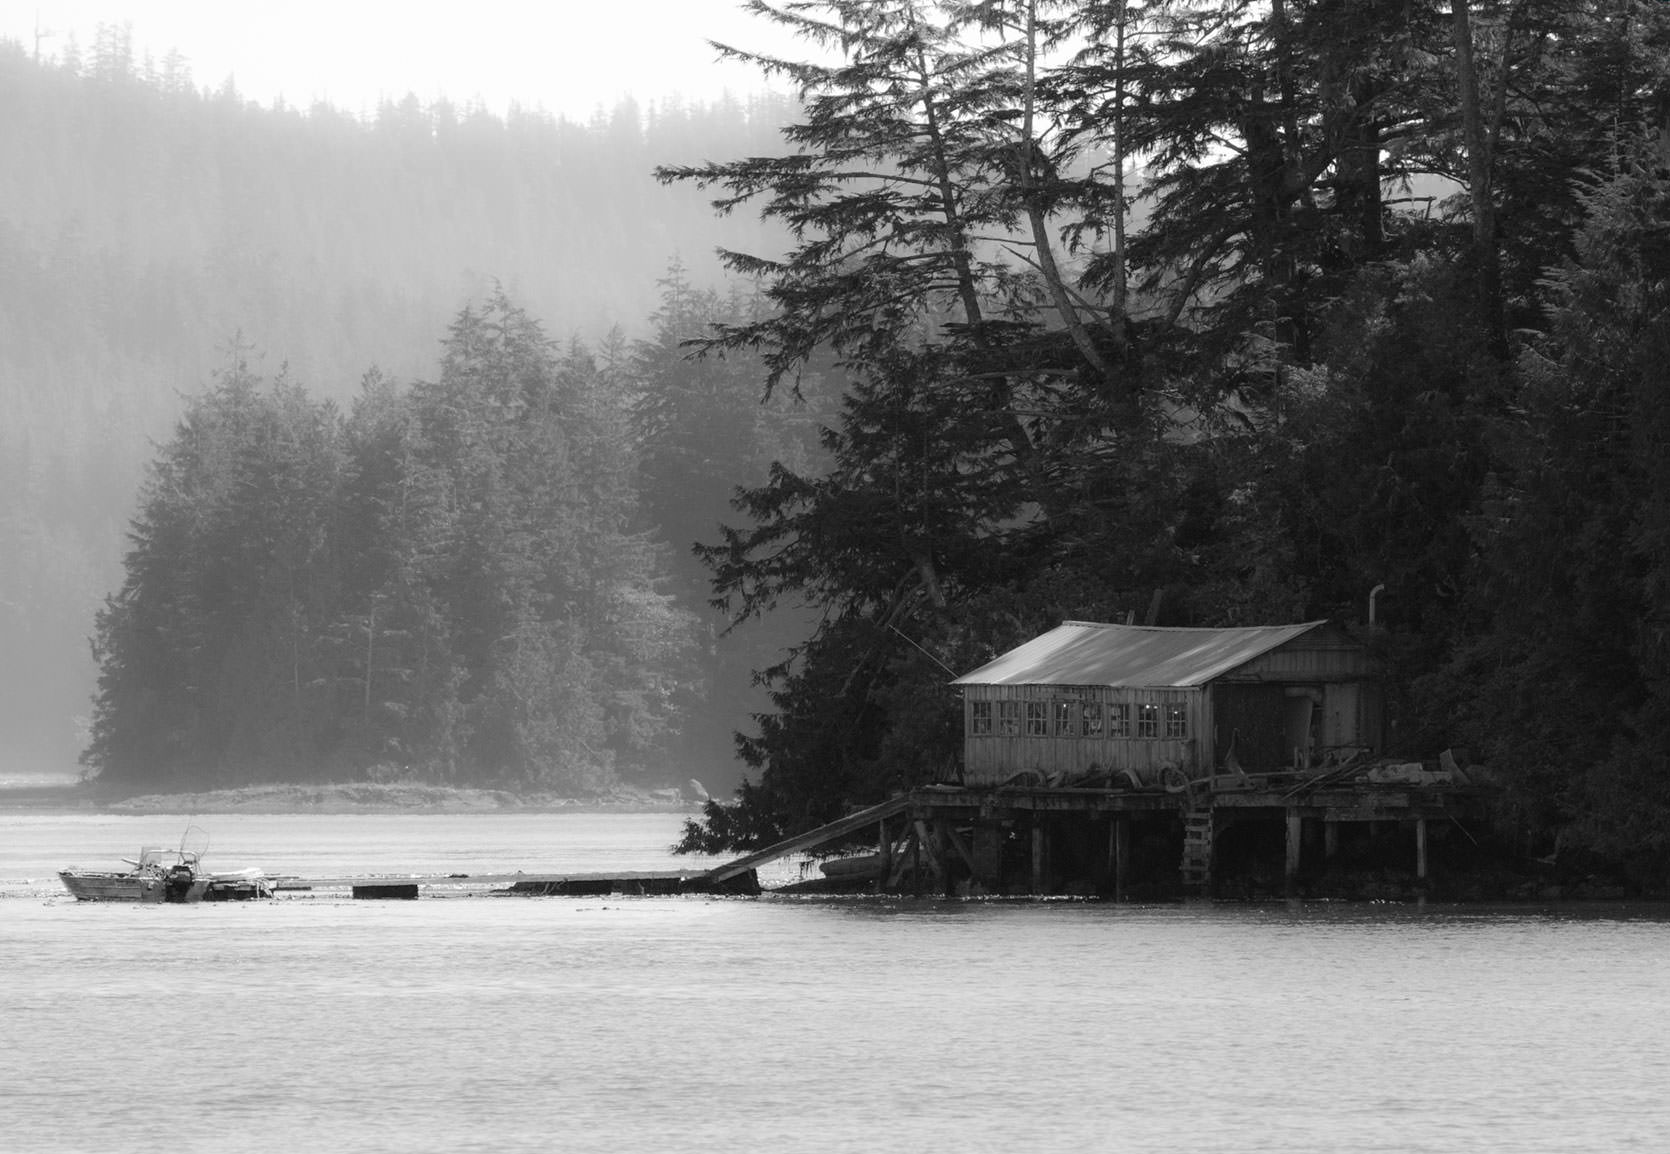 Tofino, British Columbia.  Fishing shack on a small island in Clayoquot Sound.